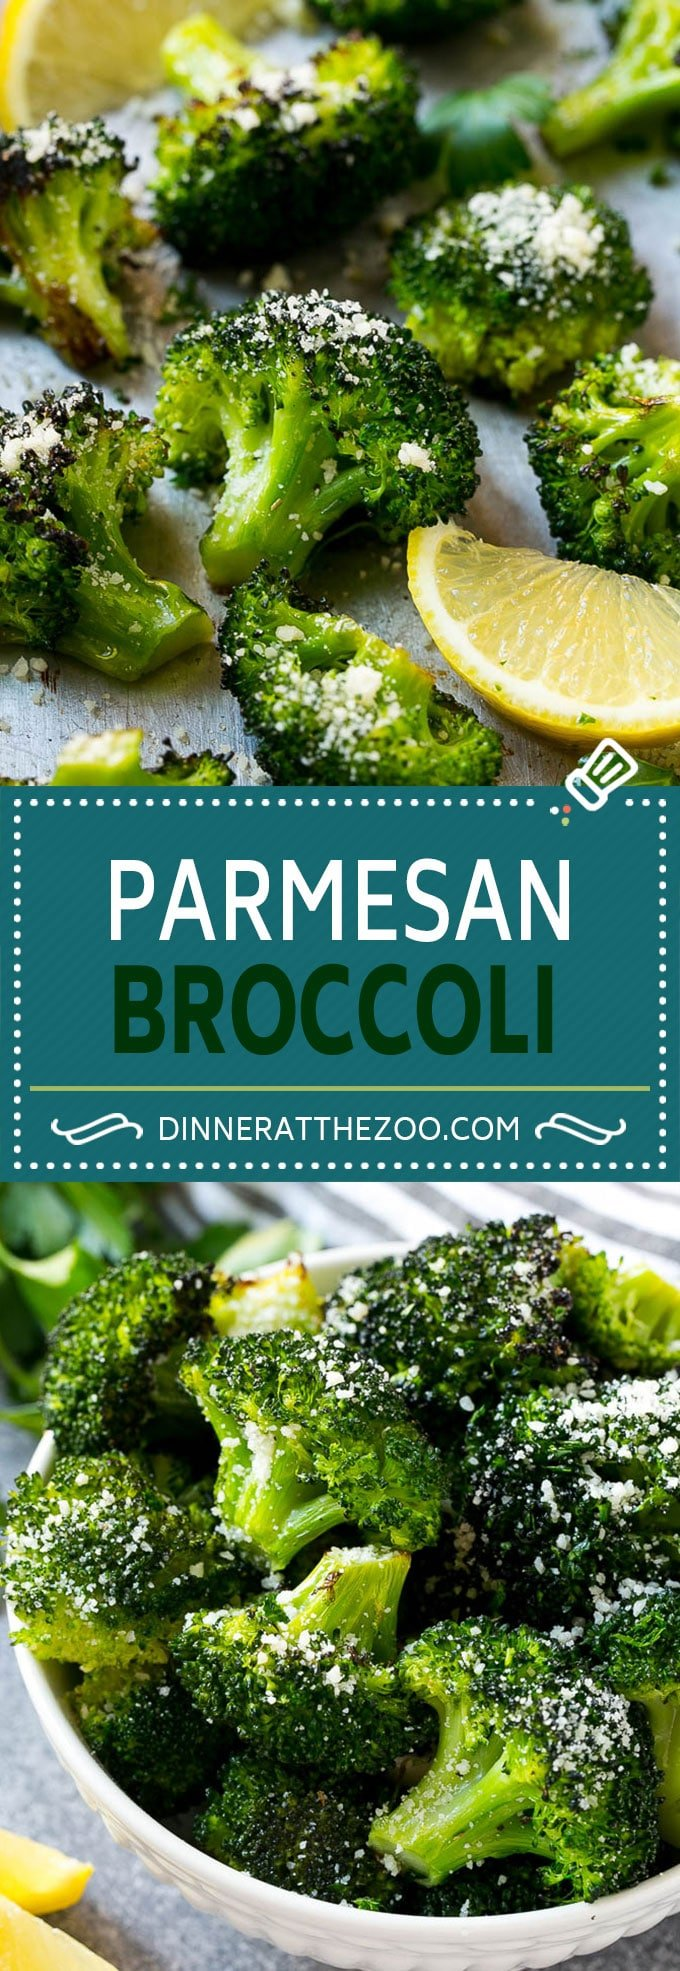 Parmesan Roasted Broccoli Recipe | Roasted Broccoli | Healthy Broccoli Recipe | Parmesan Broccoli | Easy Broccoli Recipe #broccoli #roastedbroccoli #parmesan #sidedish #glutenfree #keto #lowcarb #dinneratthezoo